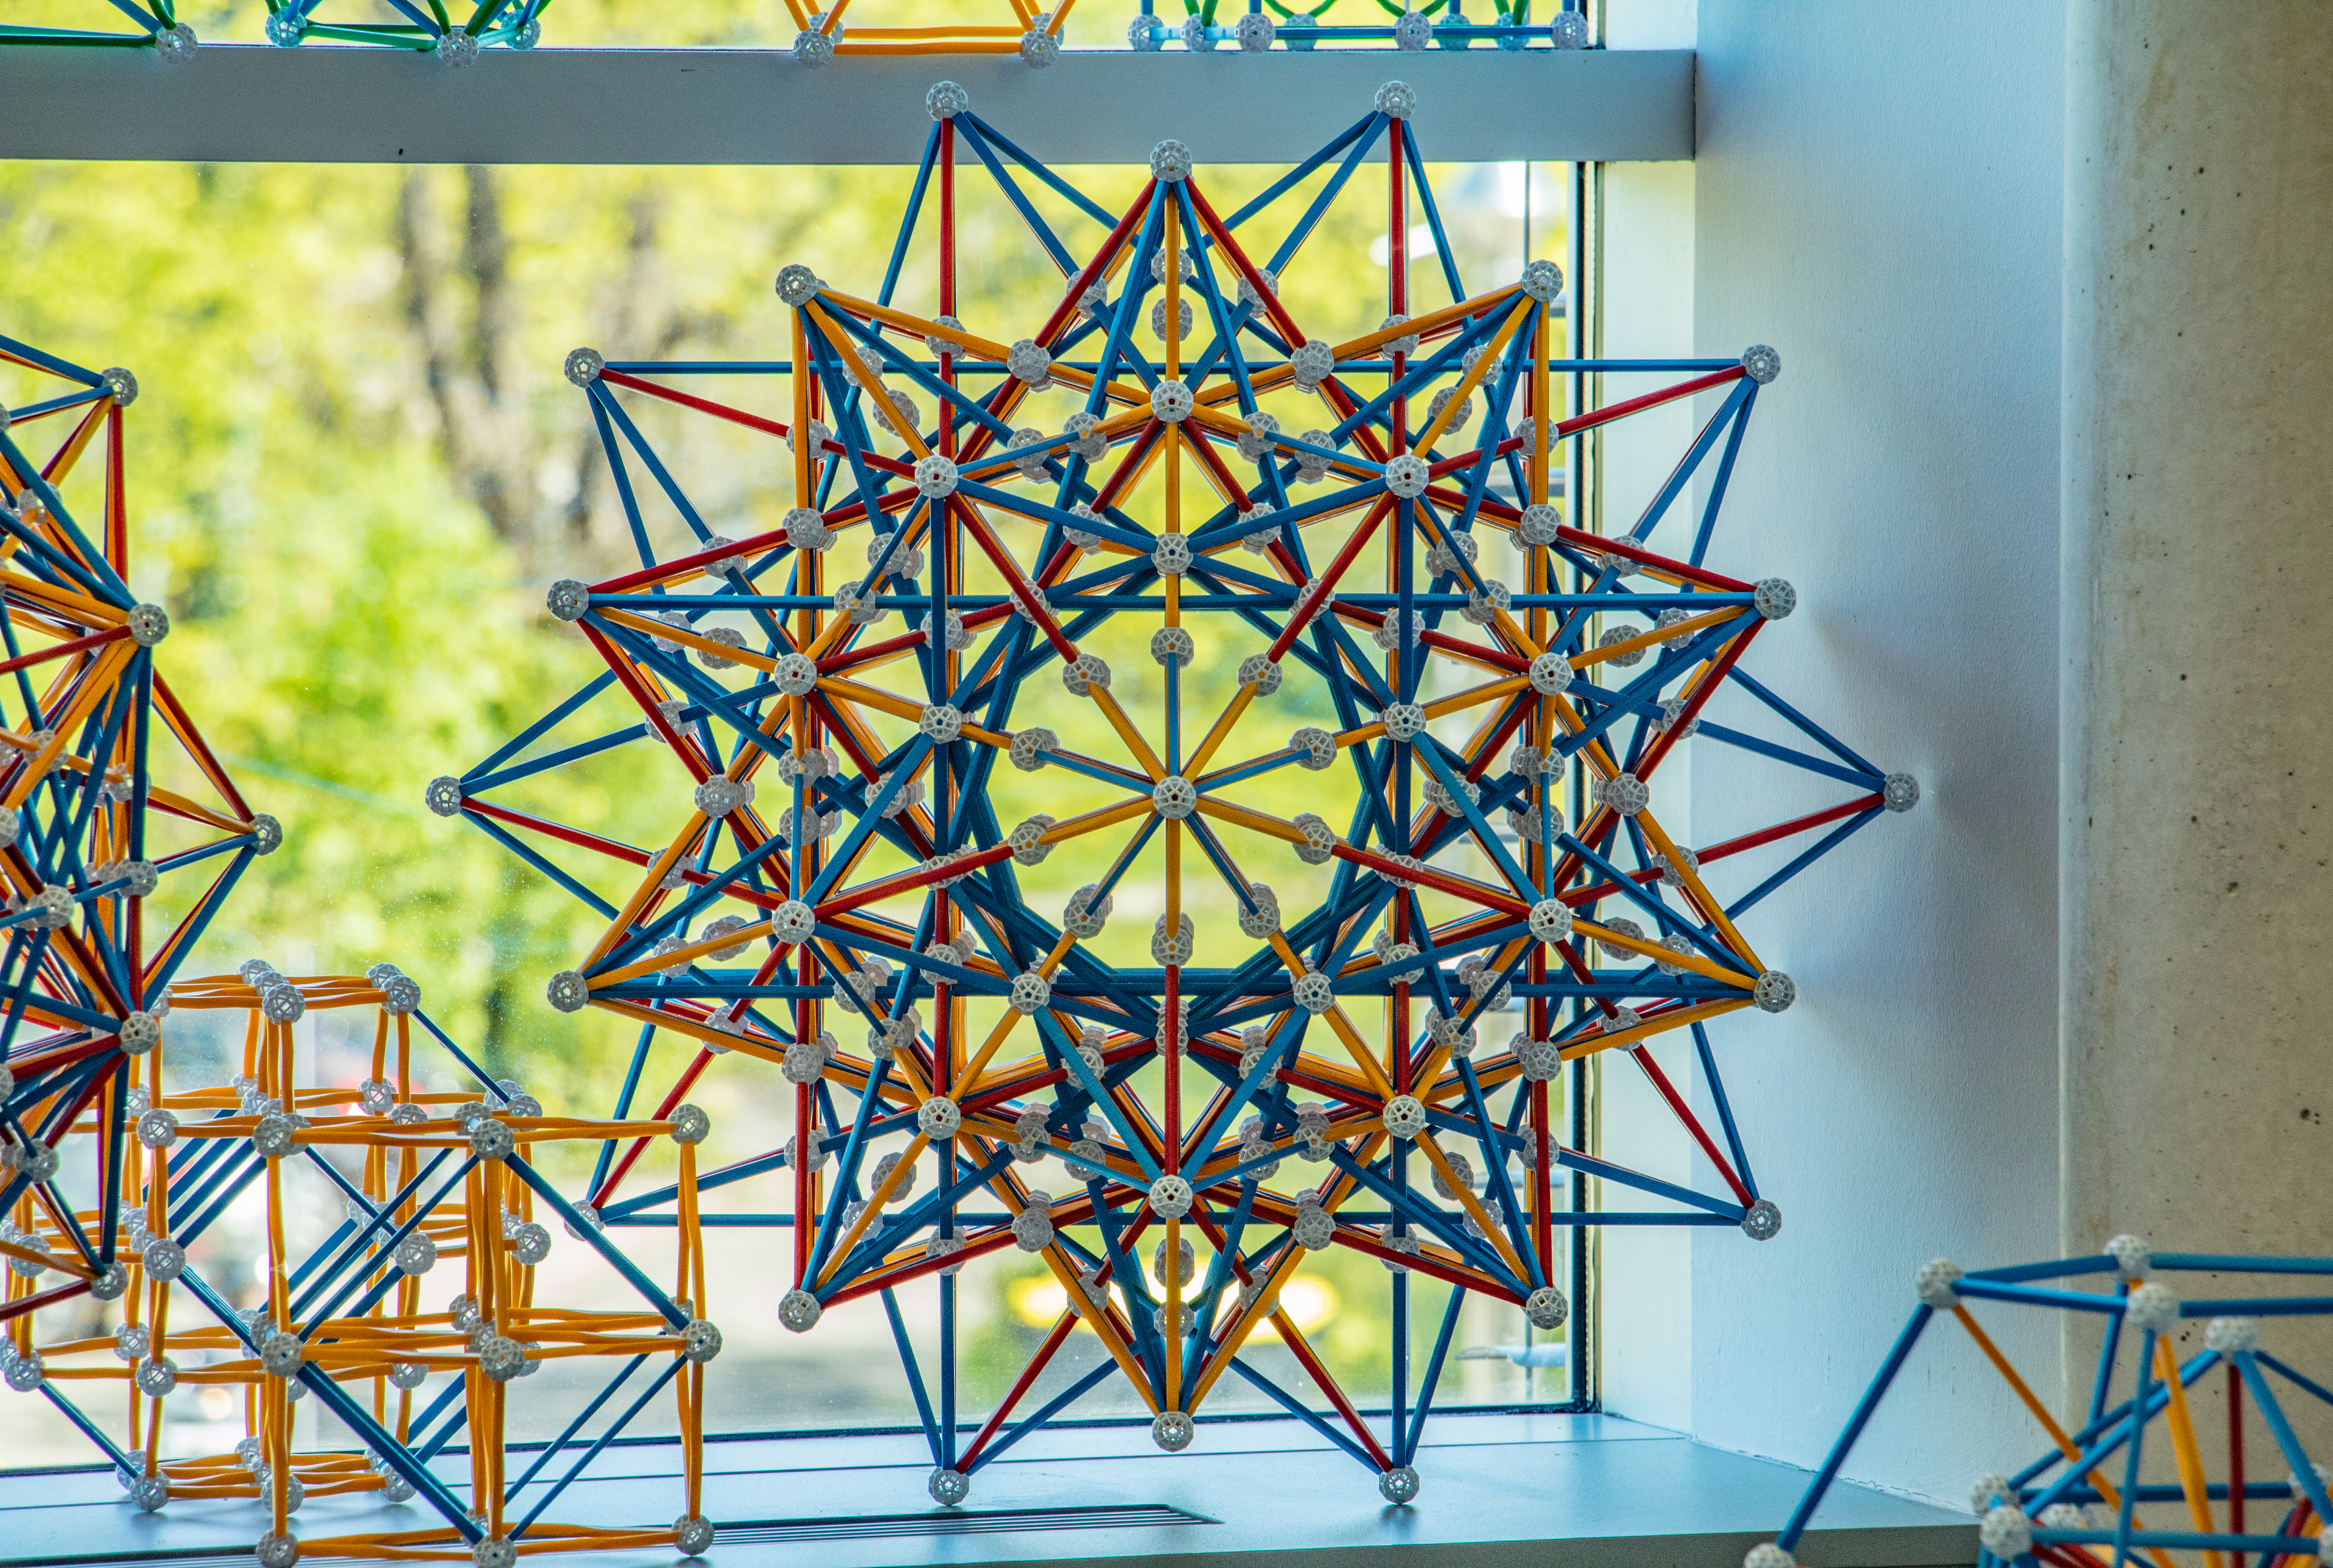 Polytopes The Circuit Is Arranged So That By Symmetry When It Follows 24a This Model Represents Vertex First Projections Of Four Schlfli Hess Polychora Share Same Edge Arrangement Grand 600 Cell